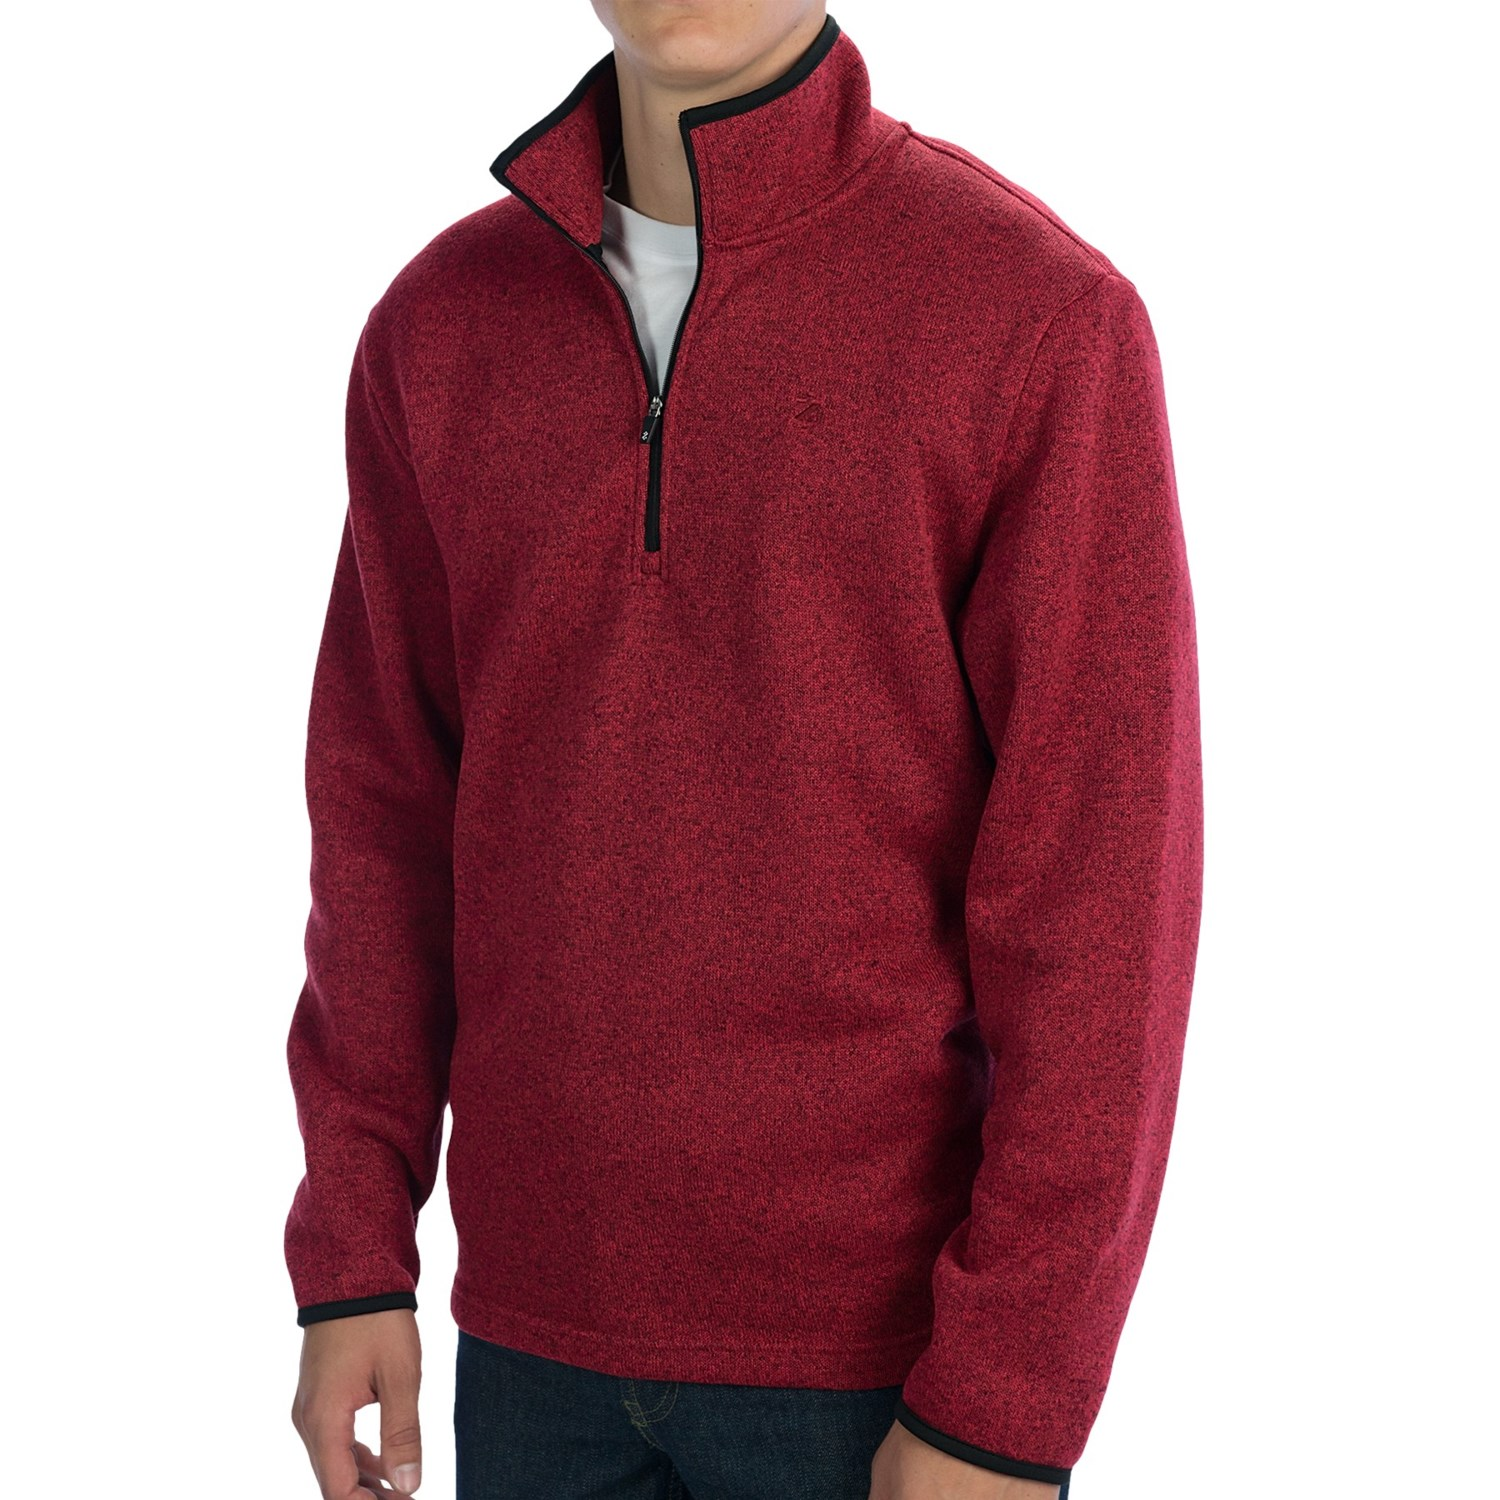 Textured Sweater-Knit Pullover Jacket - Zip Neck (For Men) - Save 49%